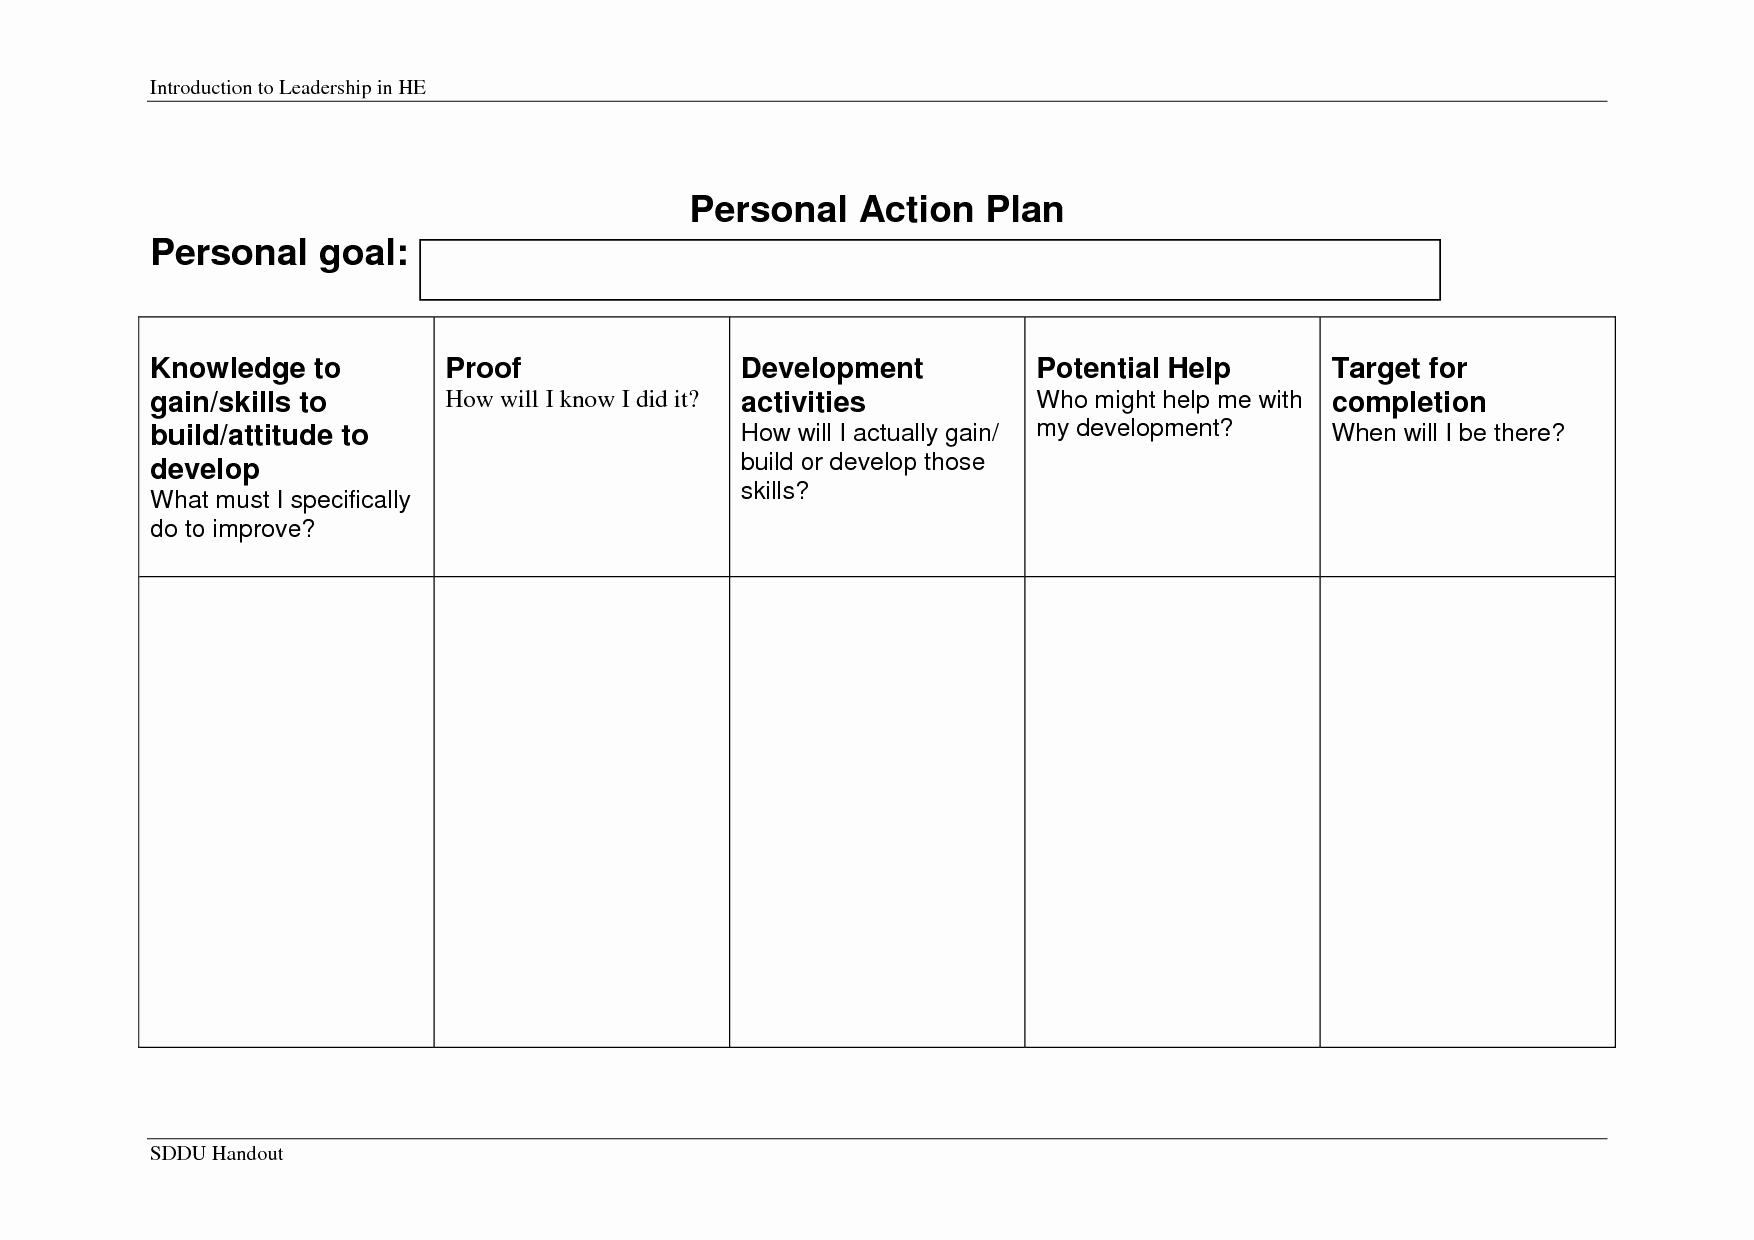 Personal Action Plan Template Beautiful Leadership Development Action Plan Template